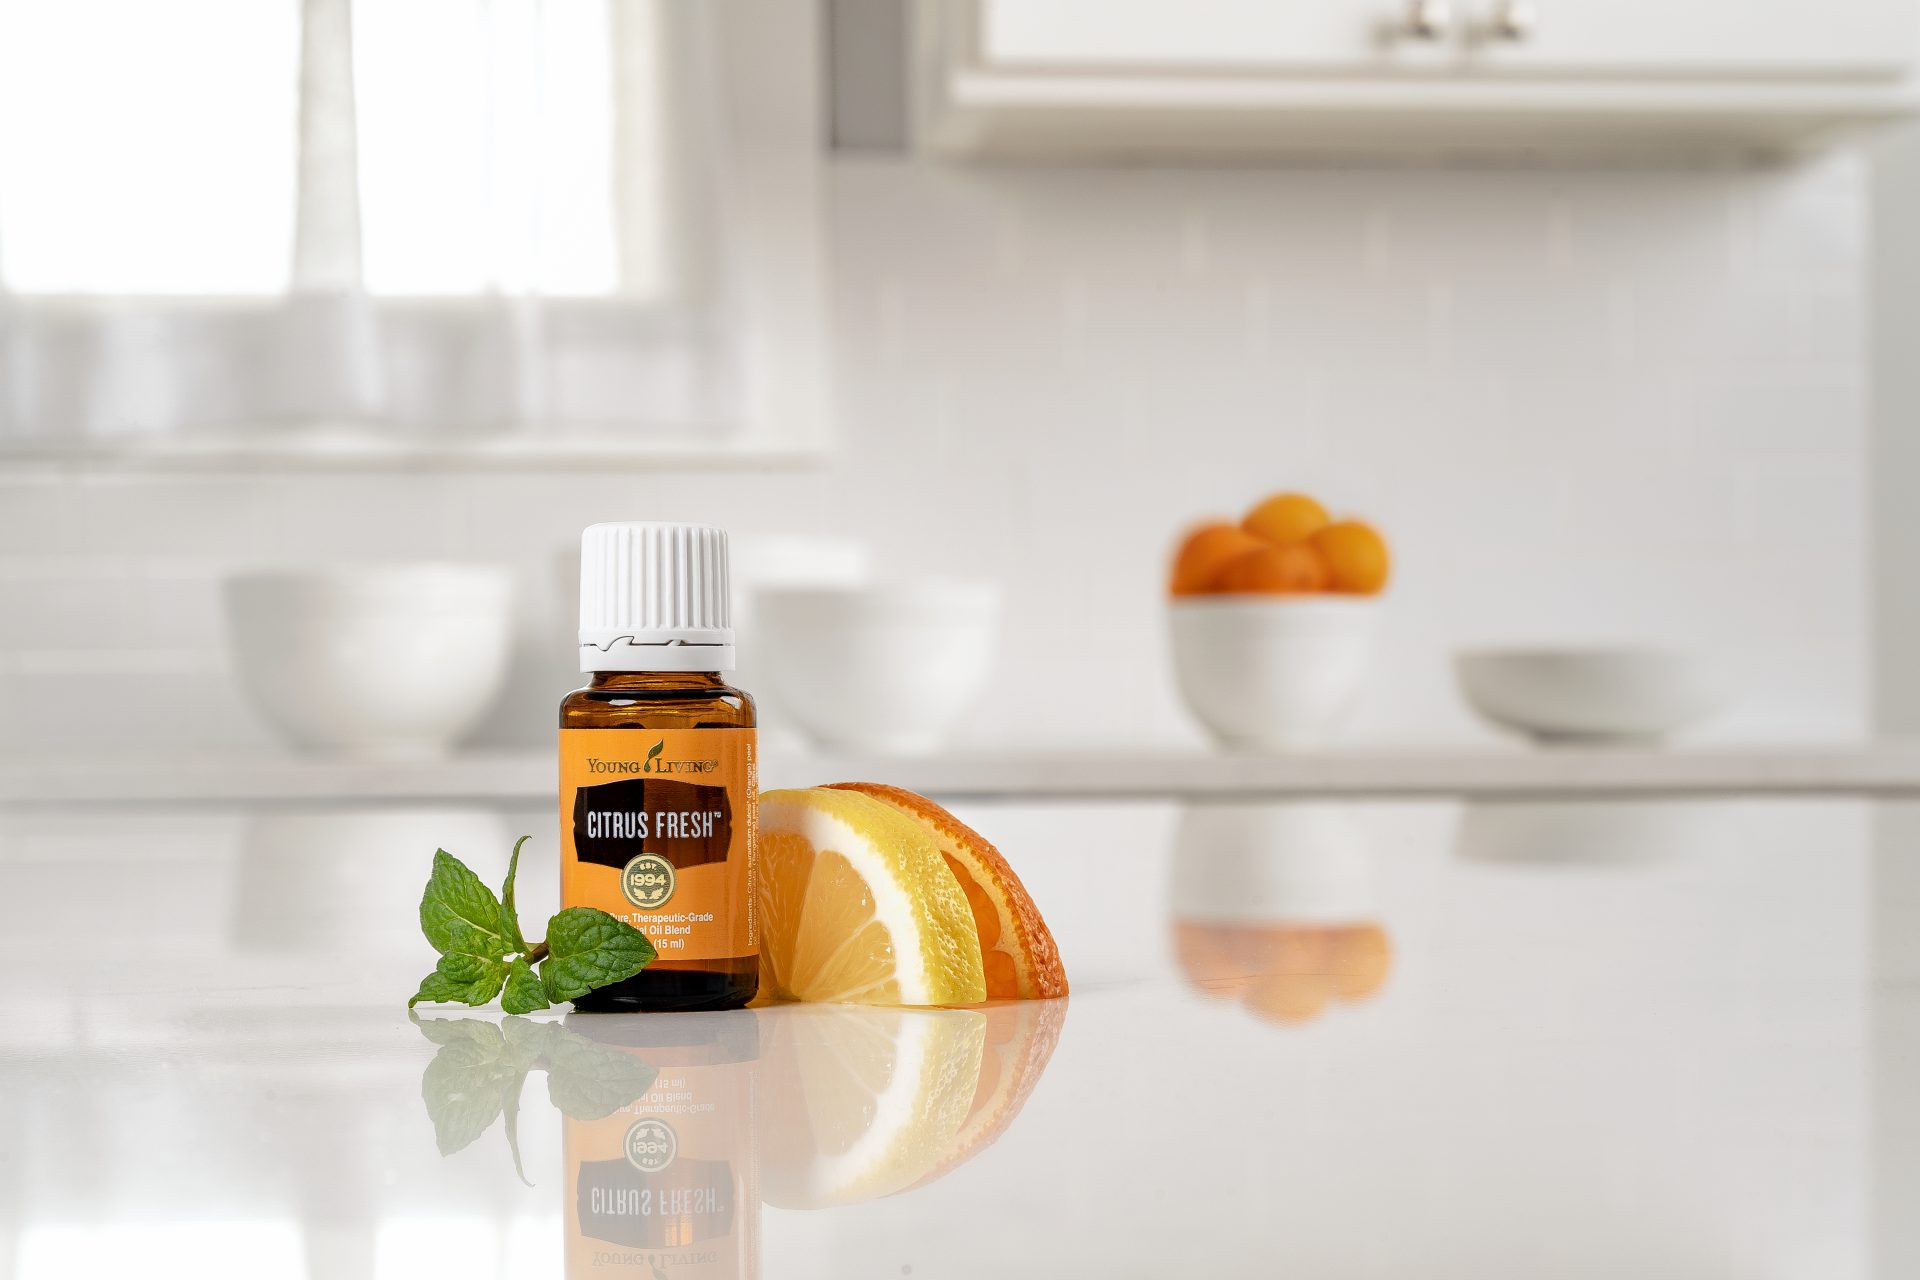 Citrus fresh on a counter top